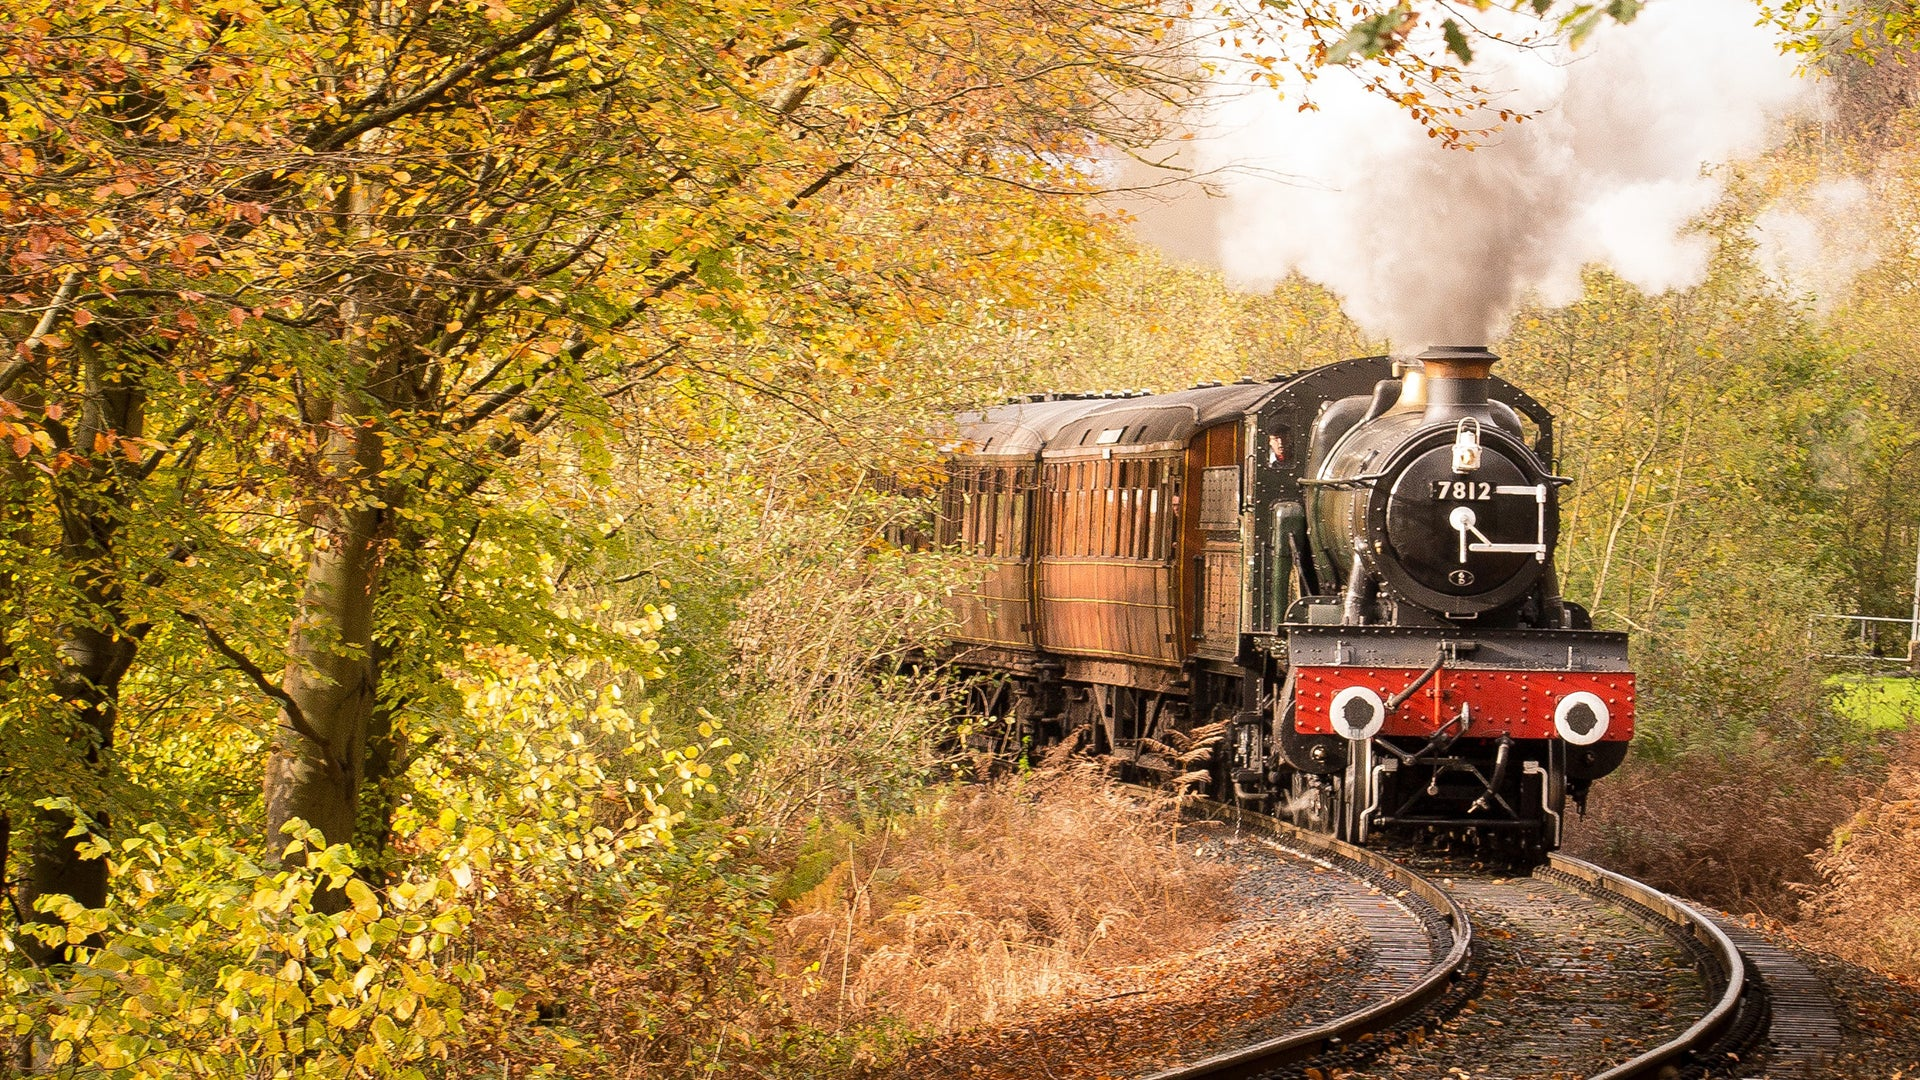 A picture of a steam train riding along a track around some trees